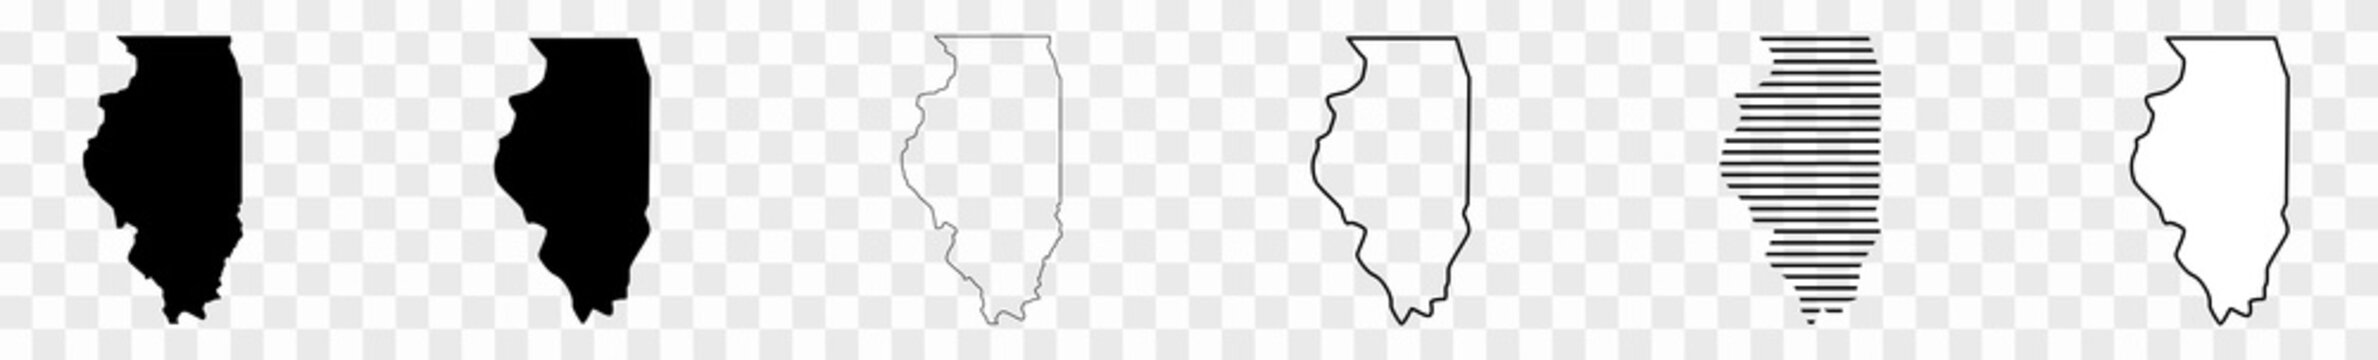 Illinois Map Black | State Border | United States | US America | Transparent Isolated | Variations